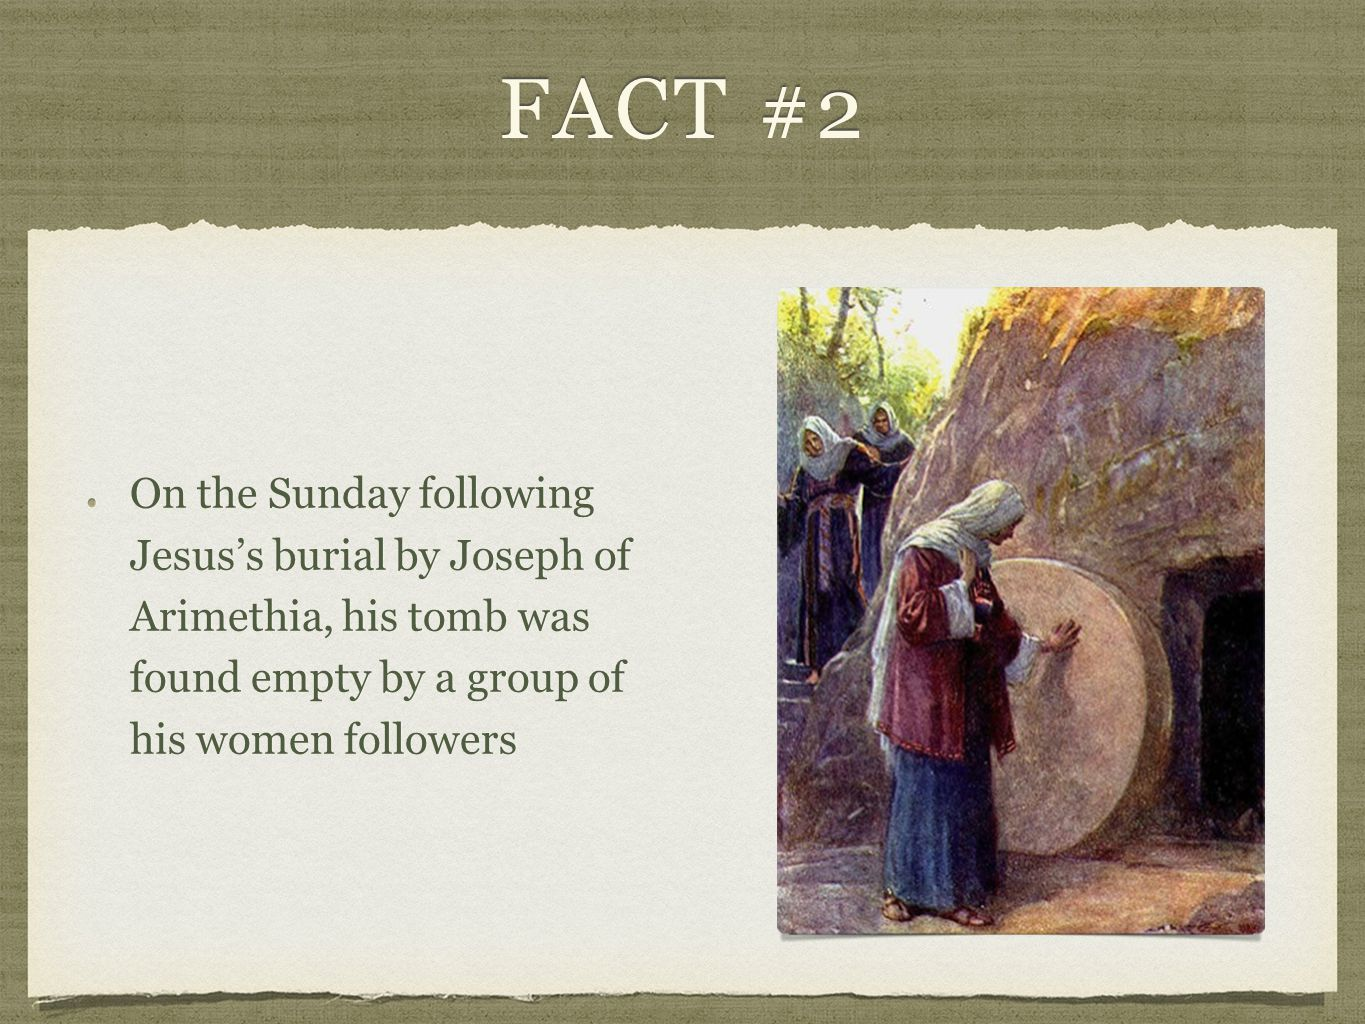 FACT #2 On the Sunday following Jesus's burial by Joseph of Arimethia, his tomb was found empty by a group of his women followers